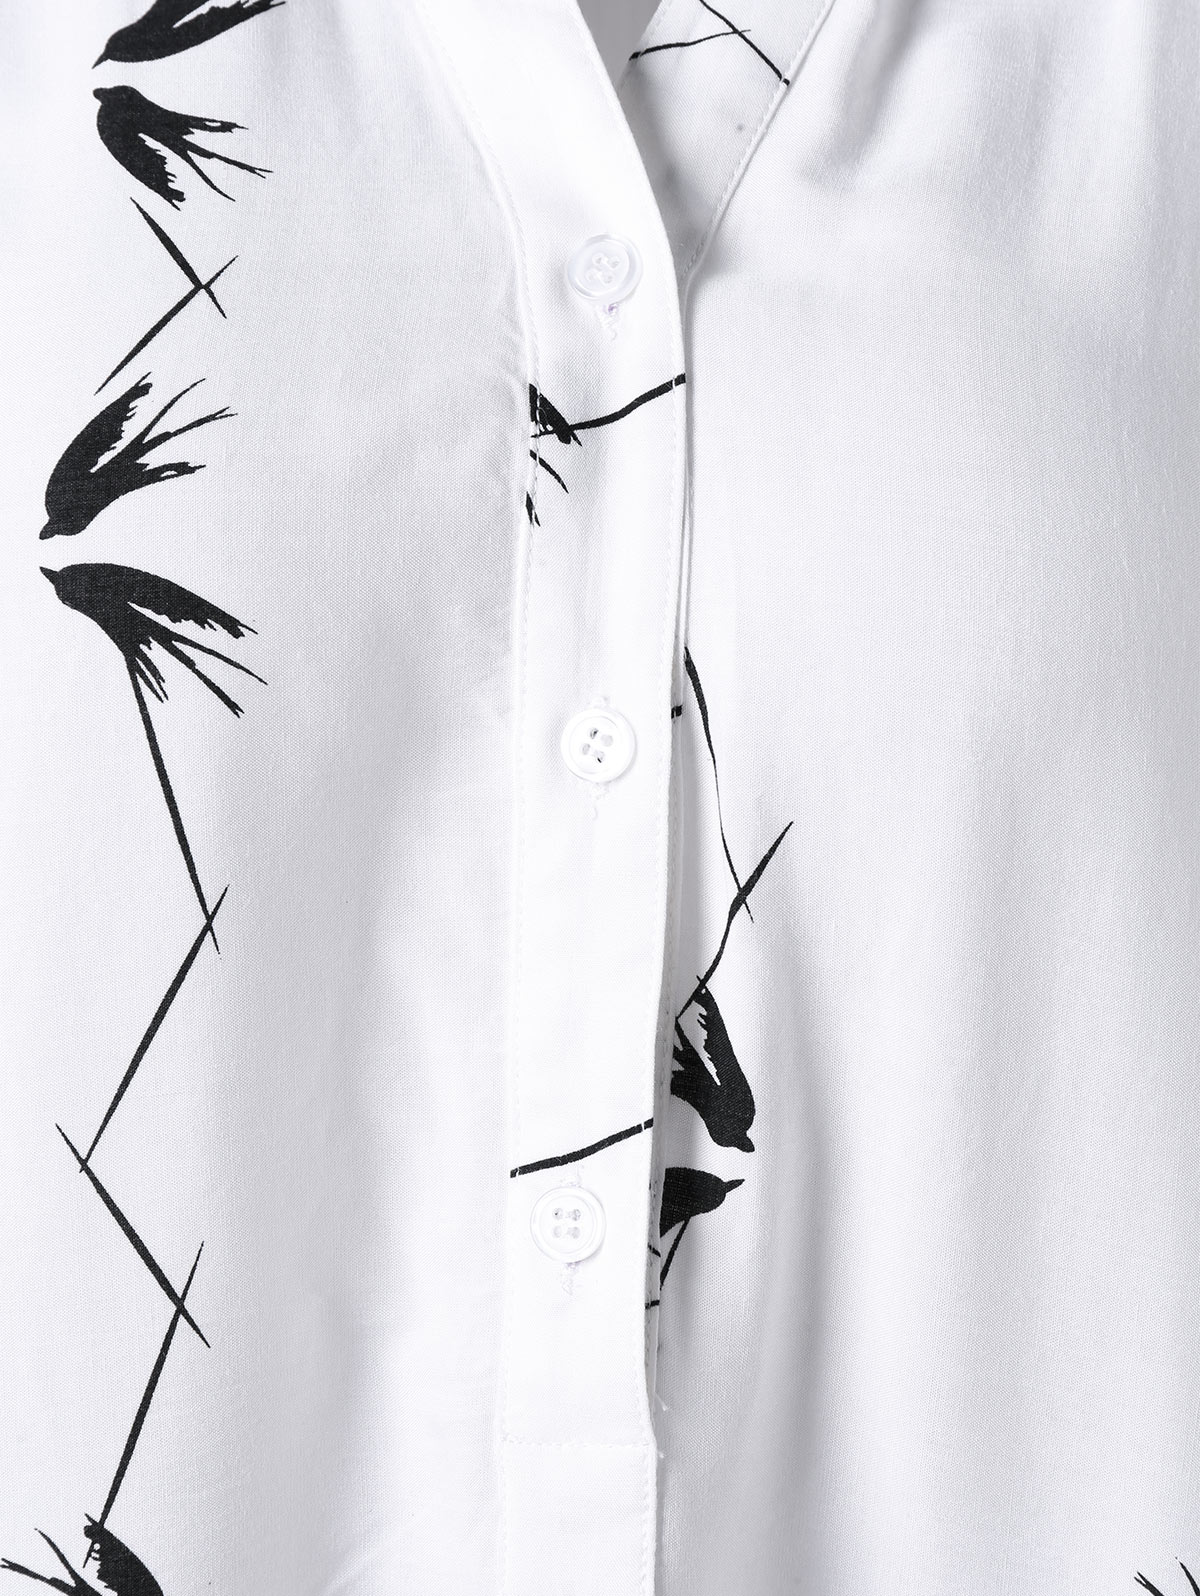 349c74ce867 GAMISS Women Summer 2018 Plus Size 5XL Sleeveless Graphic Longline Blouse  Button Monochrome Ladies Long Tops Women Clothing-in Blouses   Shirts from  Women s ...